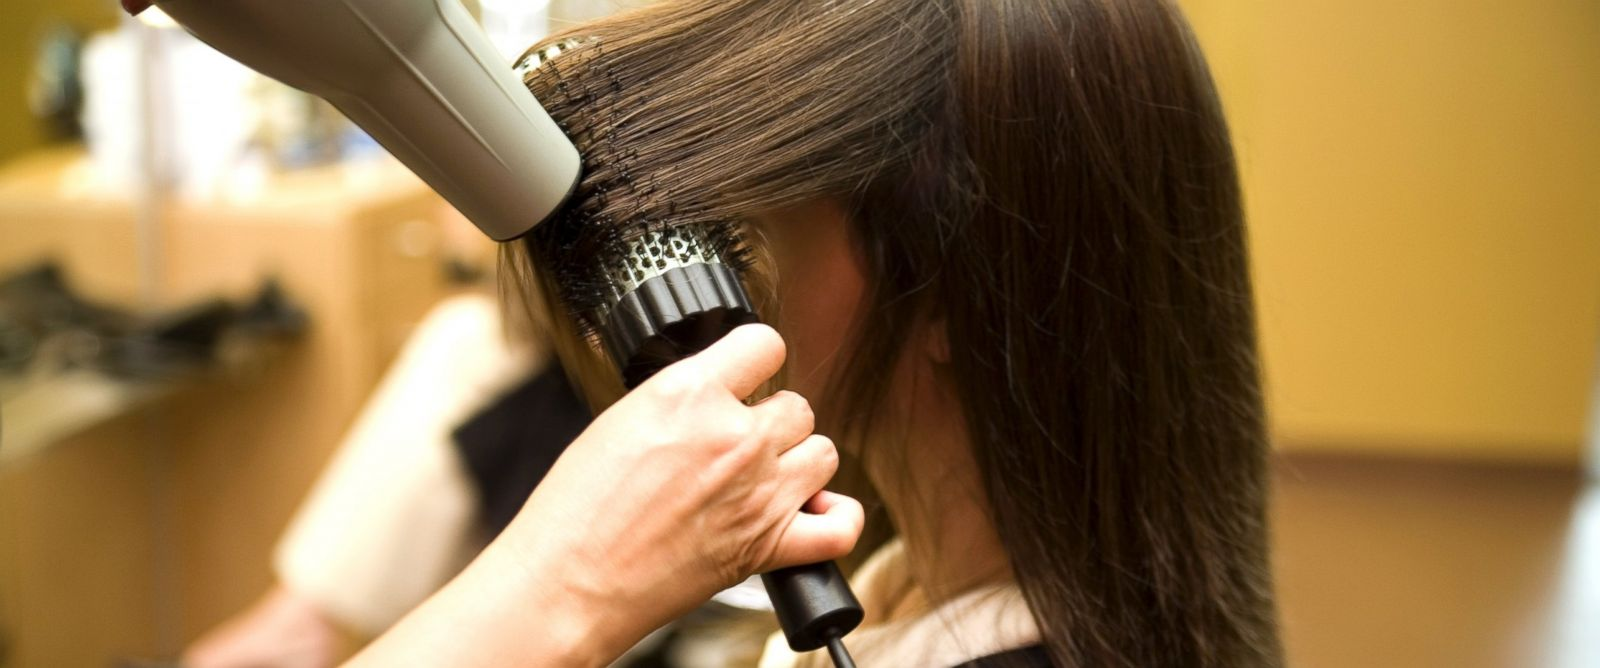 PHOTO: Glamsquad is a new app that brings blow outs to women in their home or office.